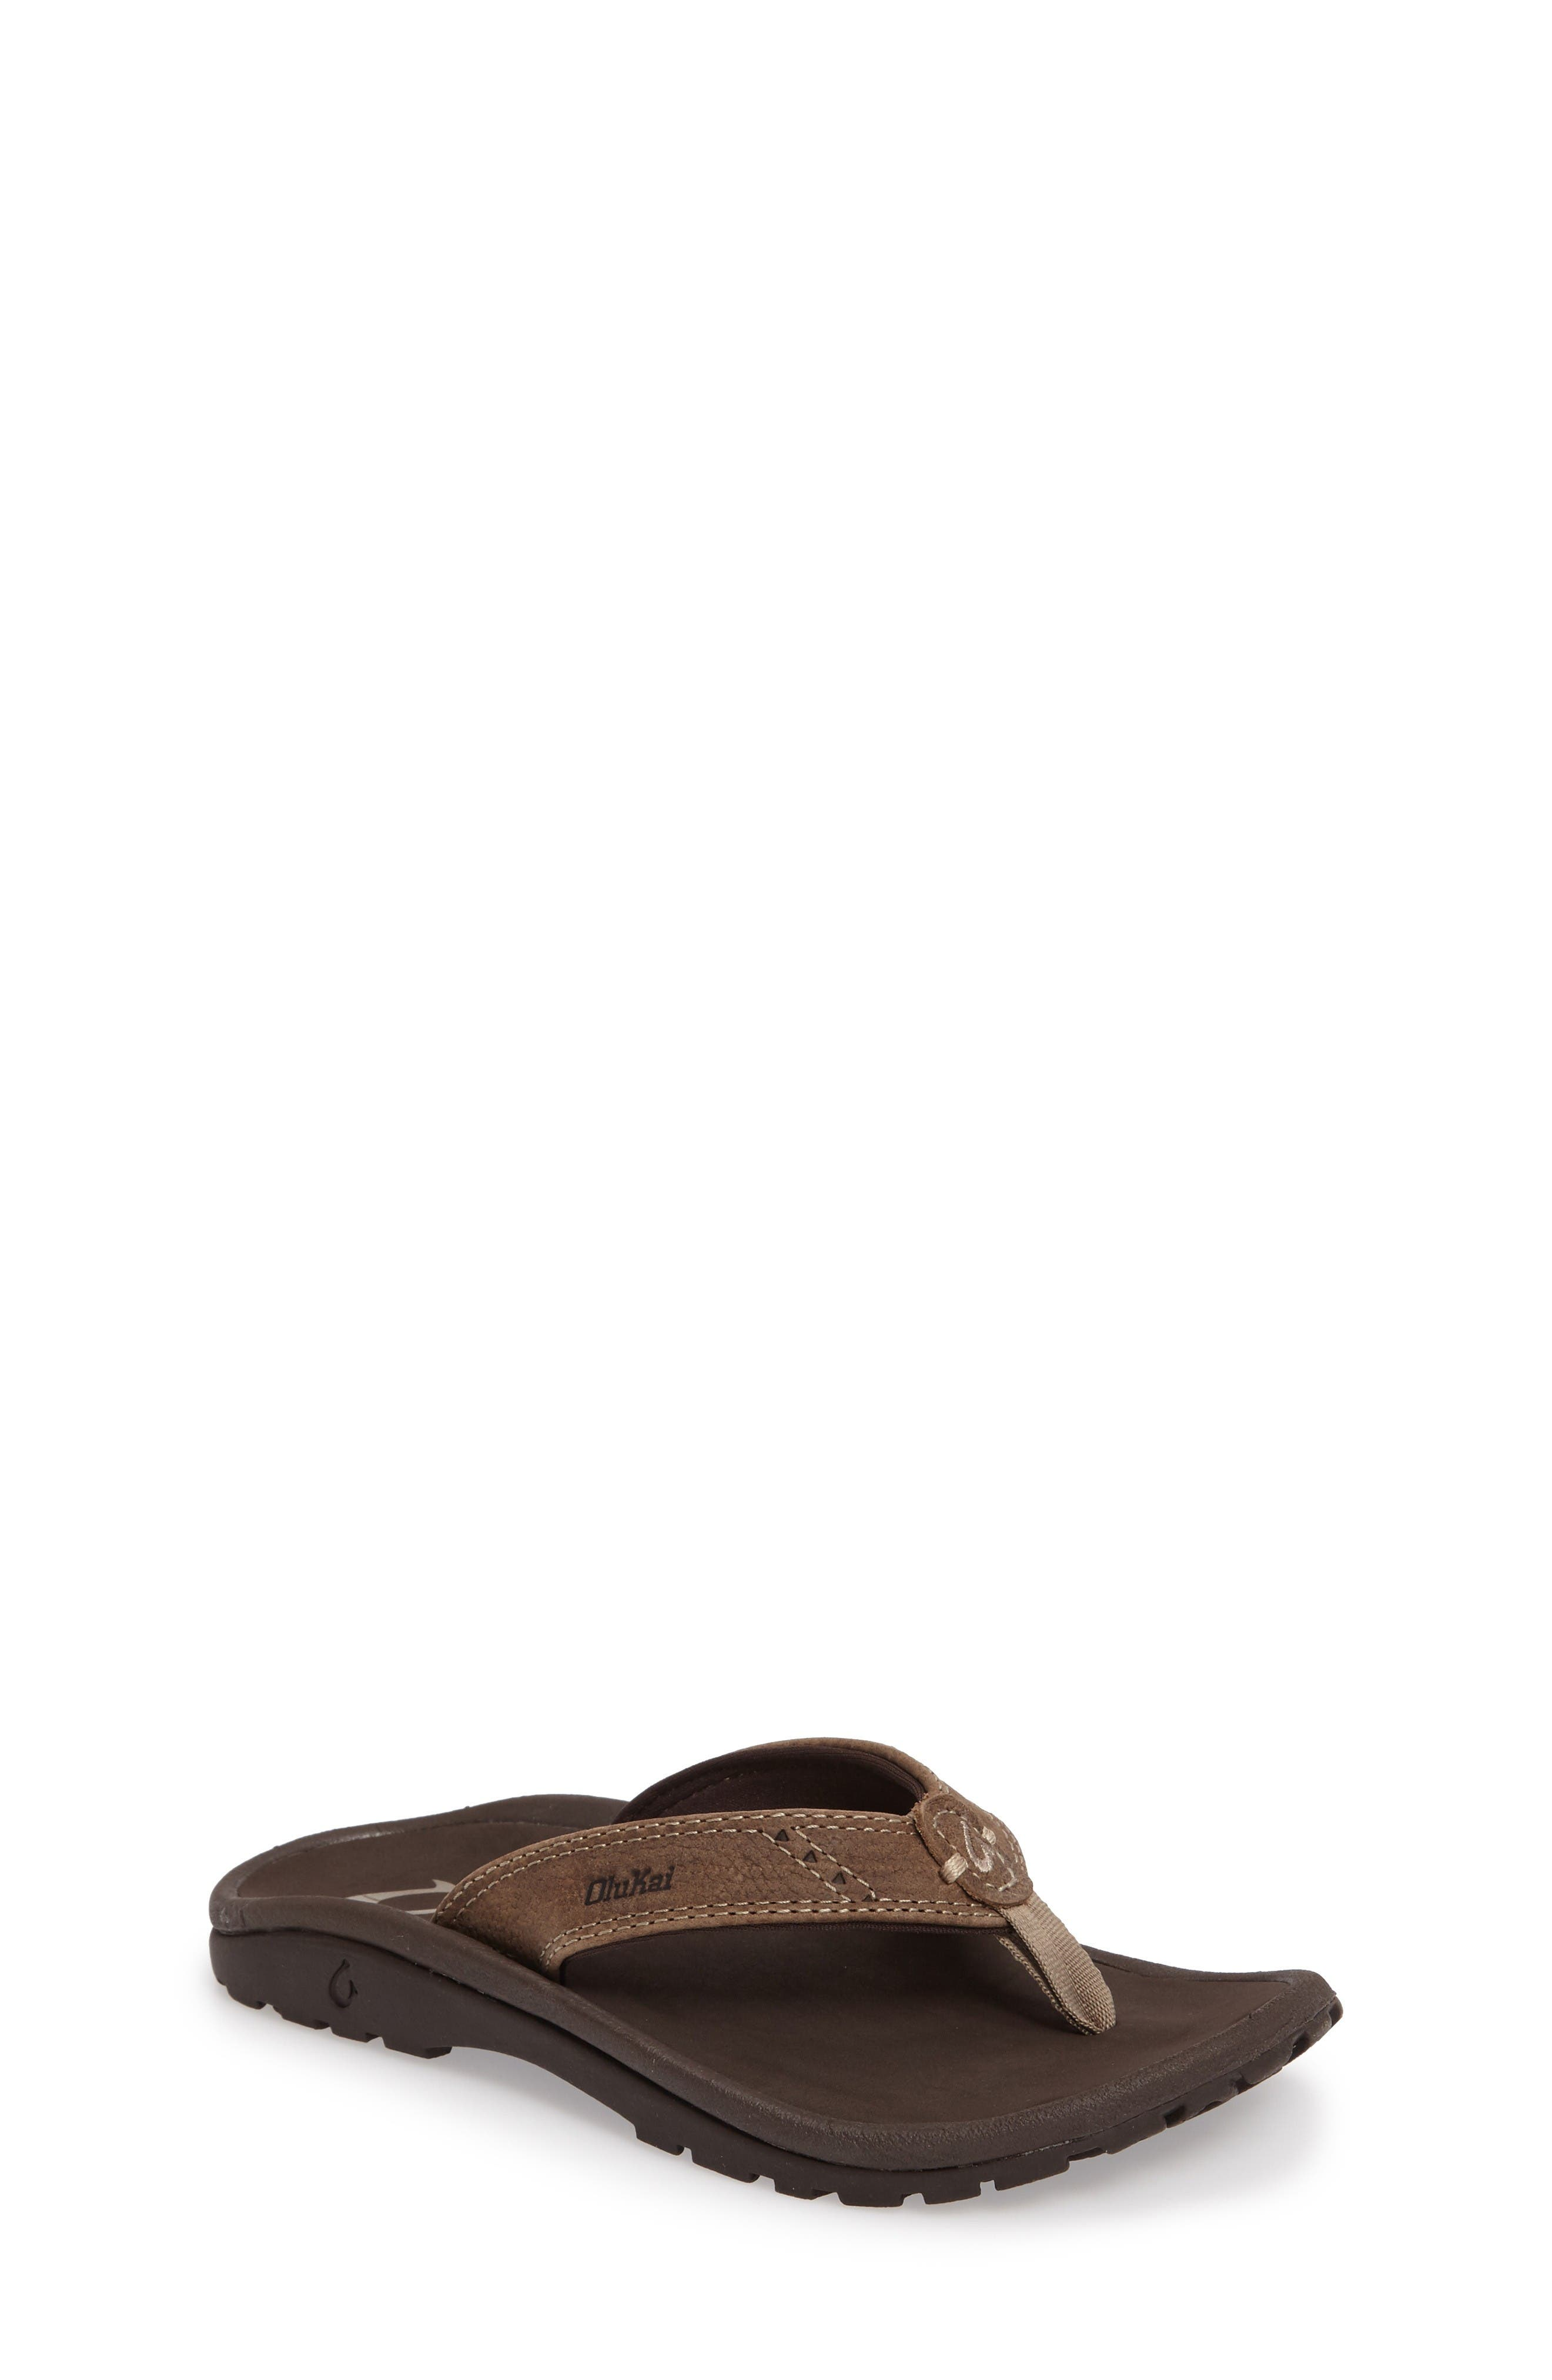 Nui Leather Flip Flop,                         Main,                         color, Clay/ Dark Java